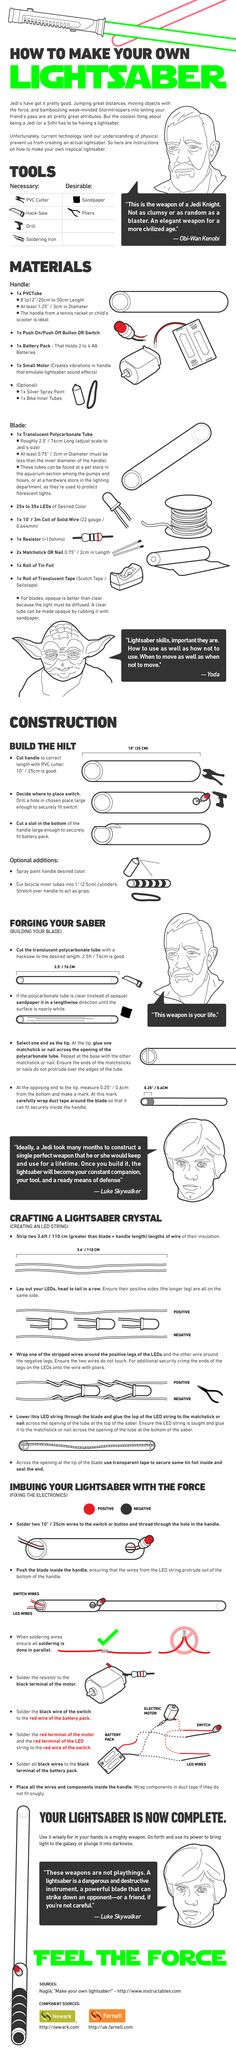 STAR WARS - How to make a Lightsaber Infographic